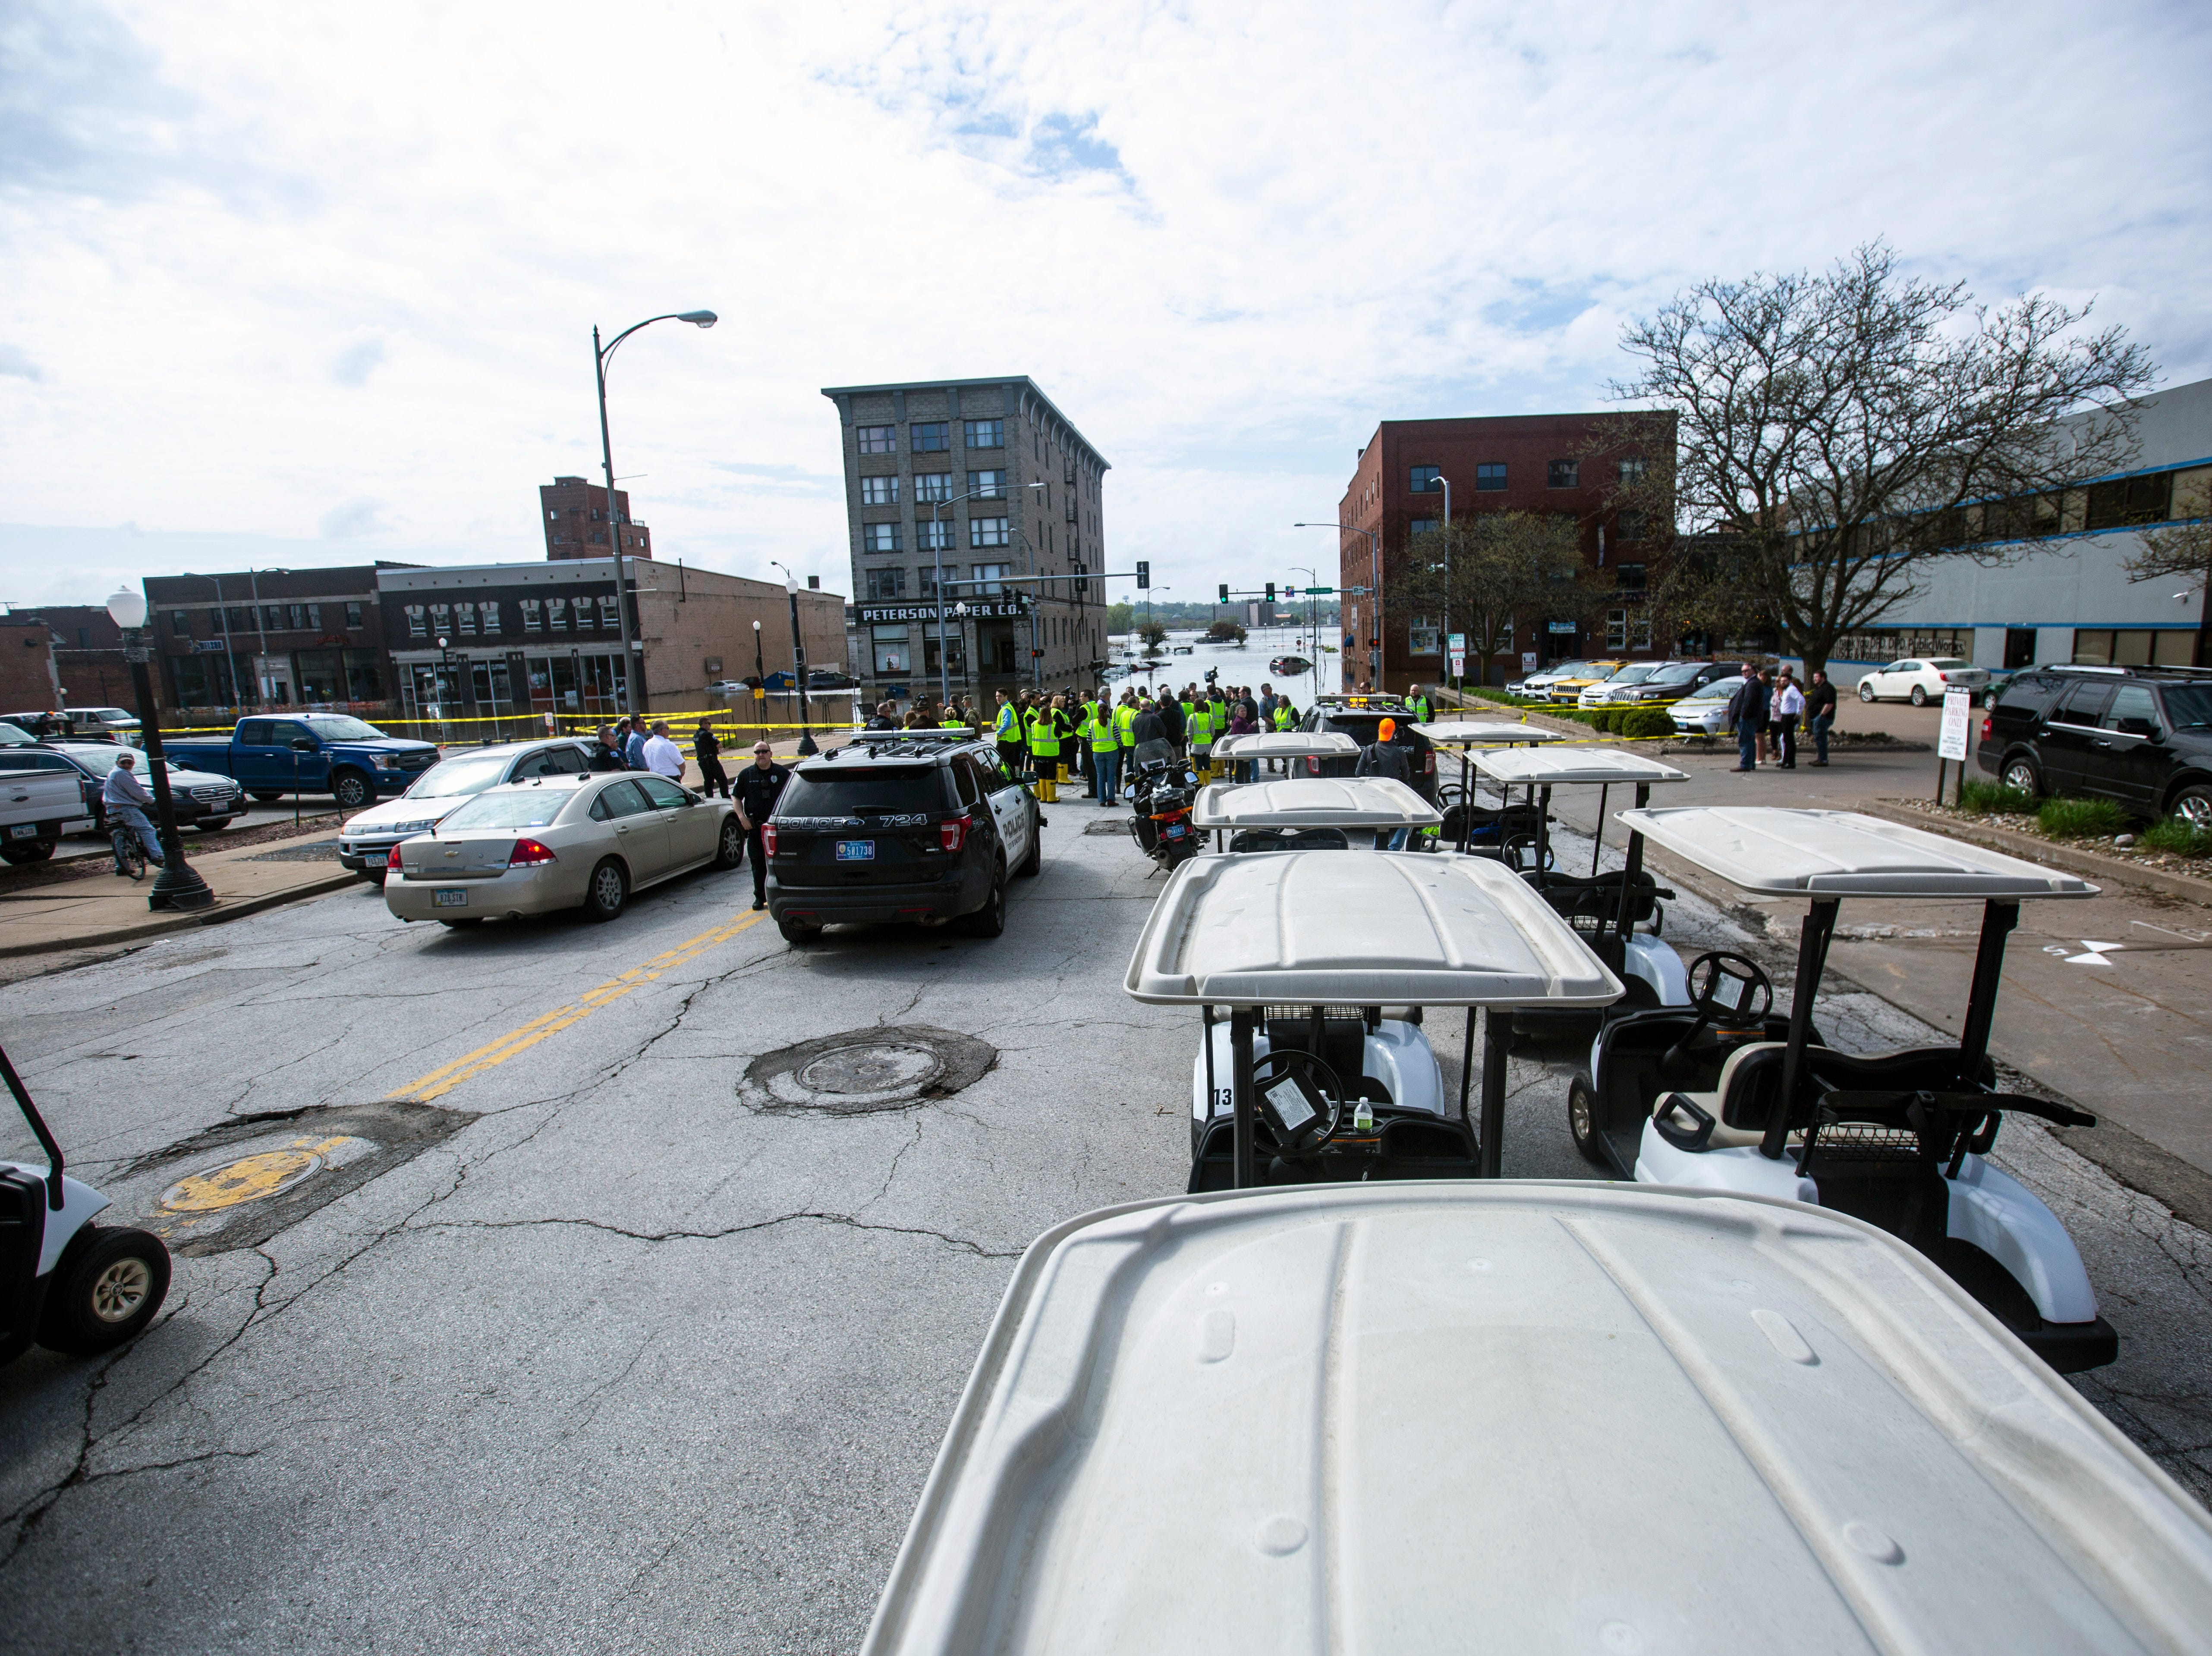 A group of golf carts park along Pershing Avenue while Iowa Gov. Kim Reynolds, tours areas impacted by floodwater, Friday, May 3, 2019, in downtown Davenport, Iowa. The temporary flood barrier at Pershing Avenue and River Drive failed Tuesday afternoon.